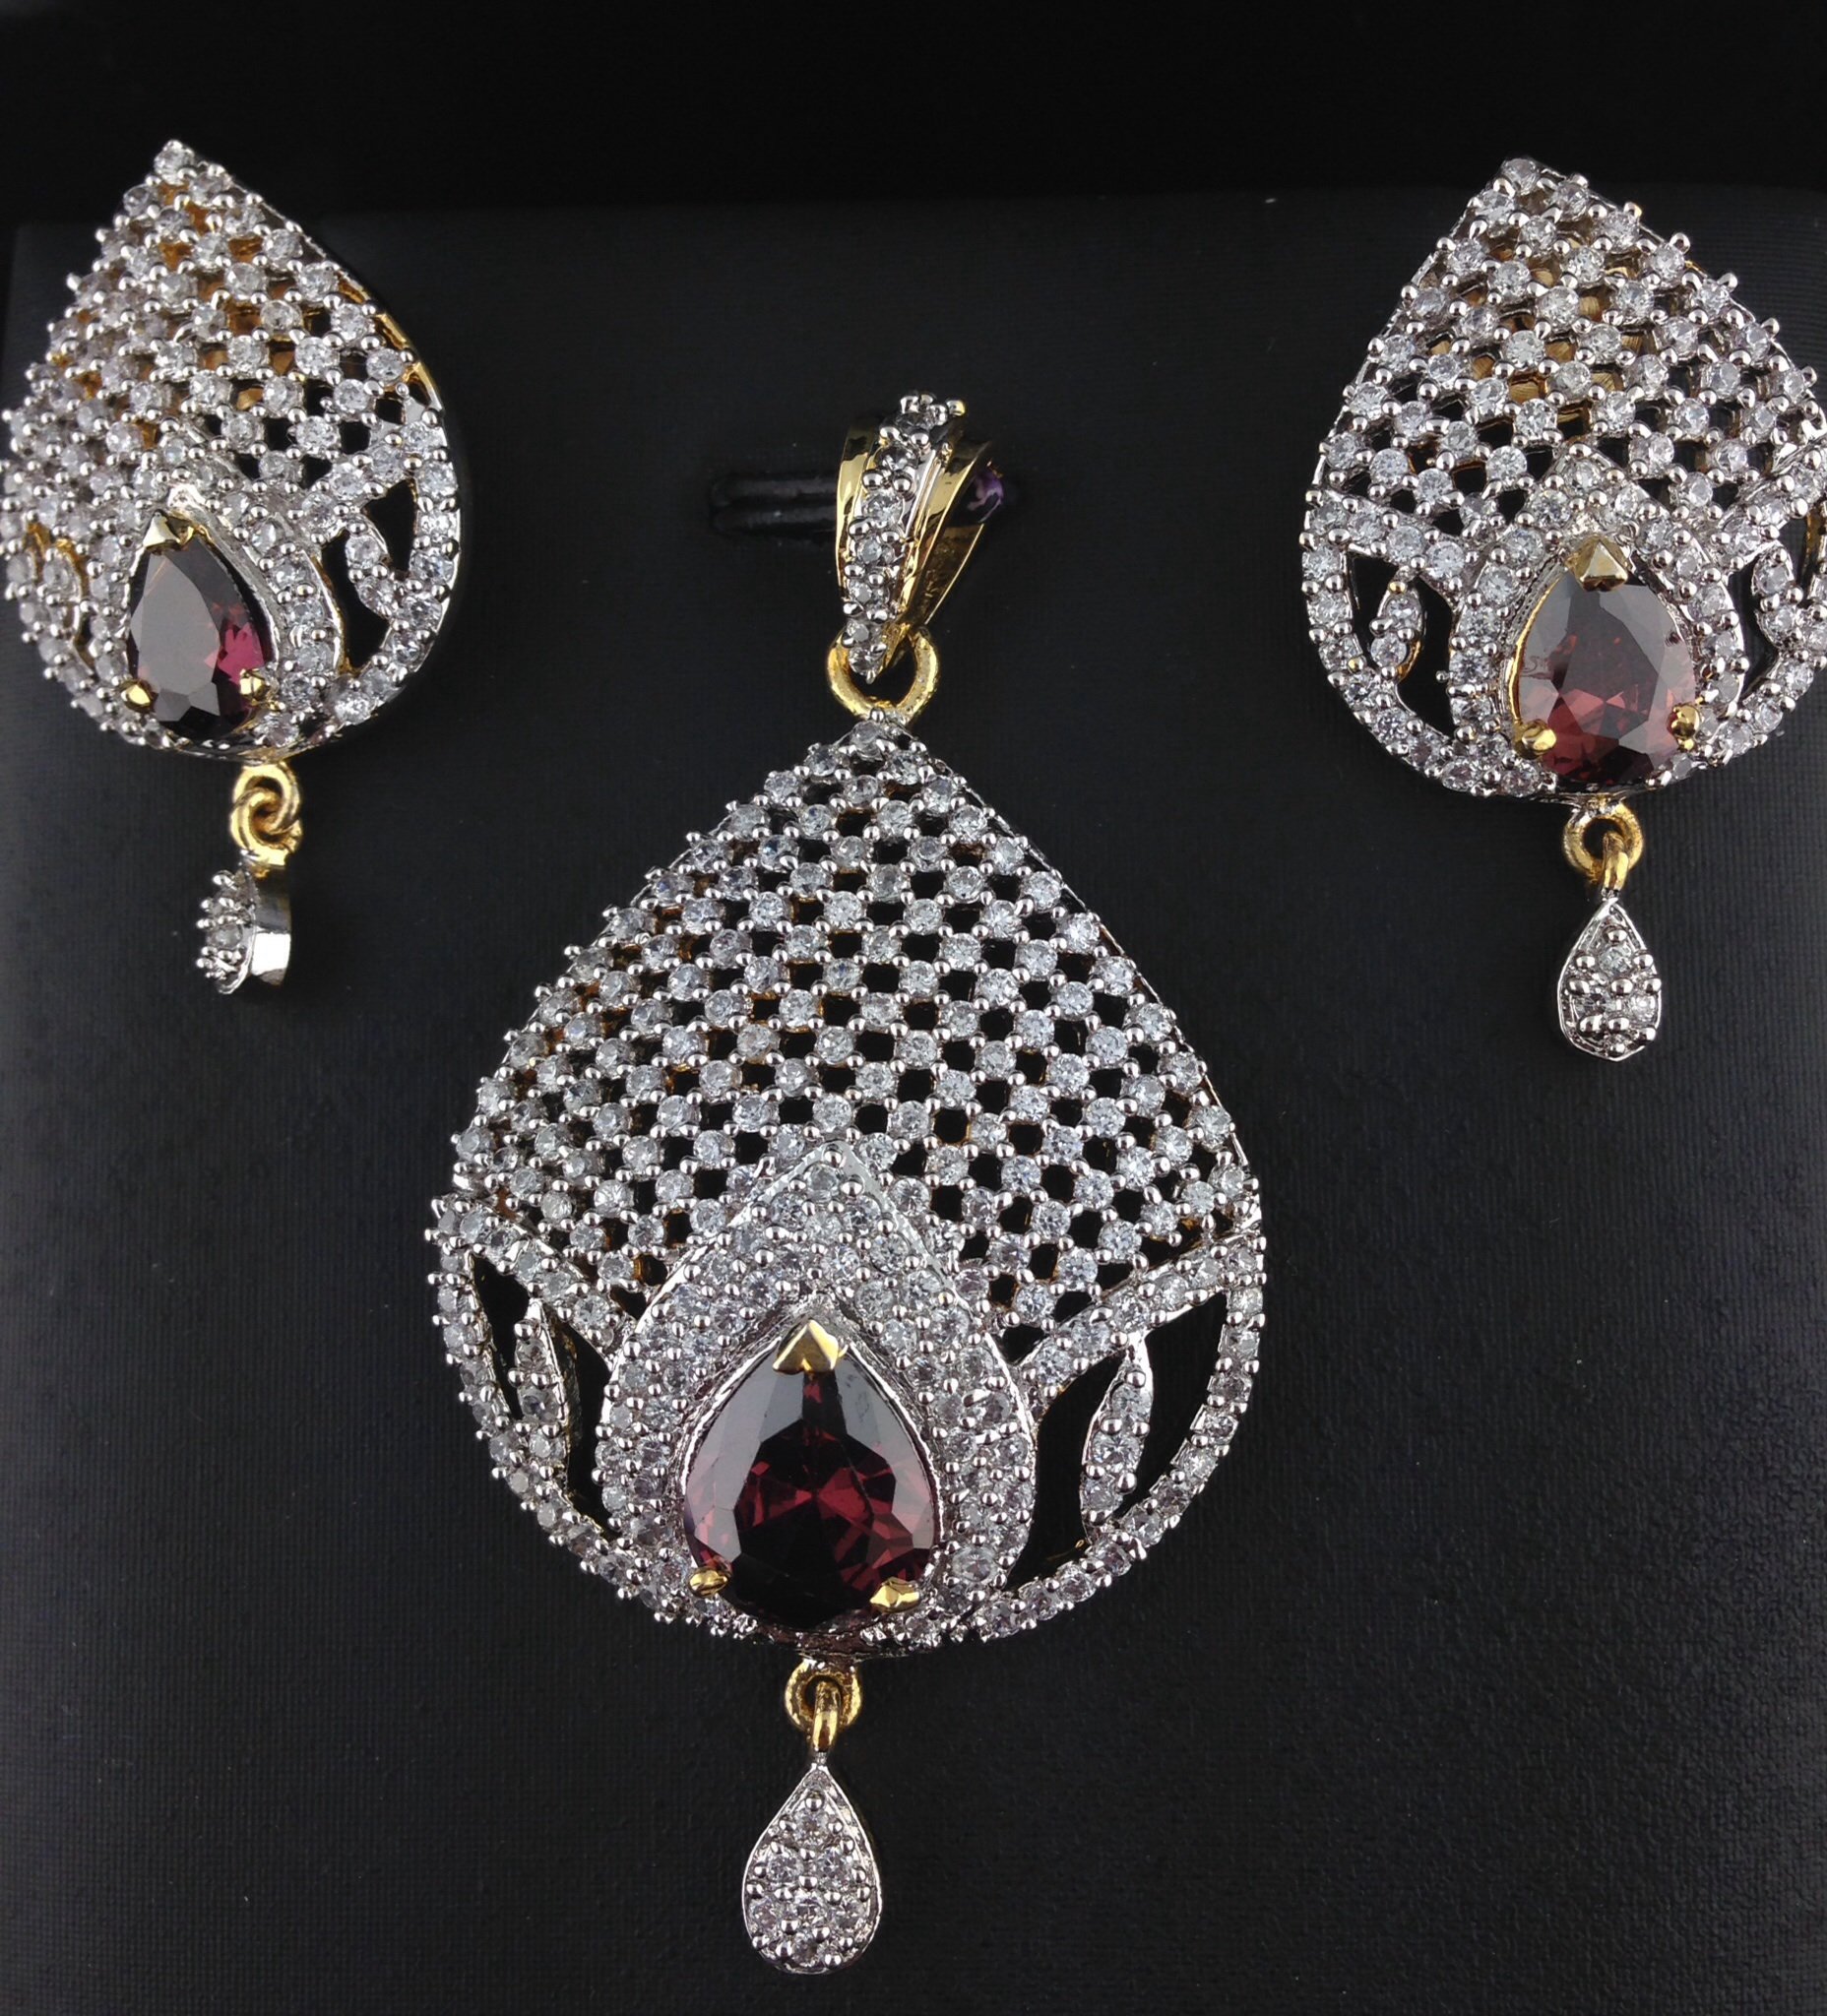 bridal collection necklace ring gold perfect complete concepts wedding beautiful diamond amuzing design modern women earing white jewellery indian accessories favors cheap amazing set for sets stone gems